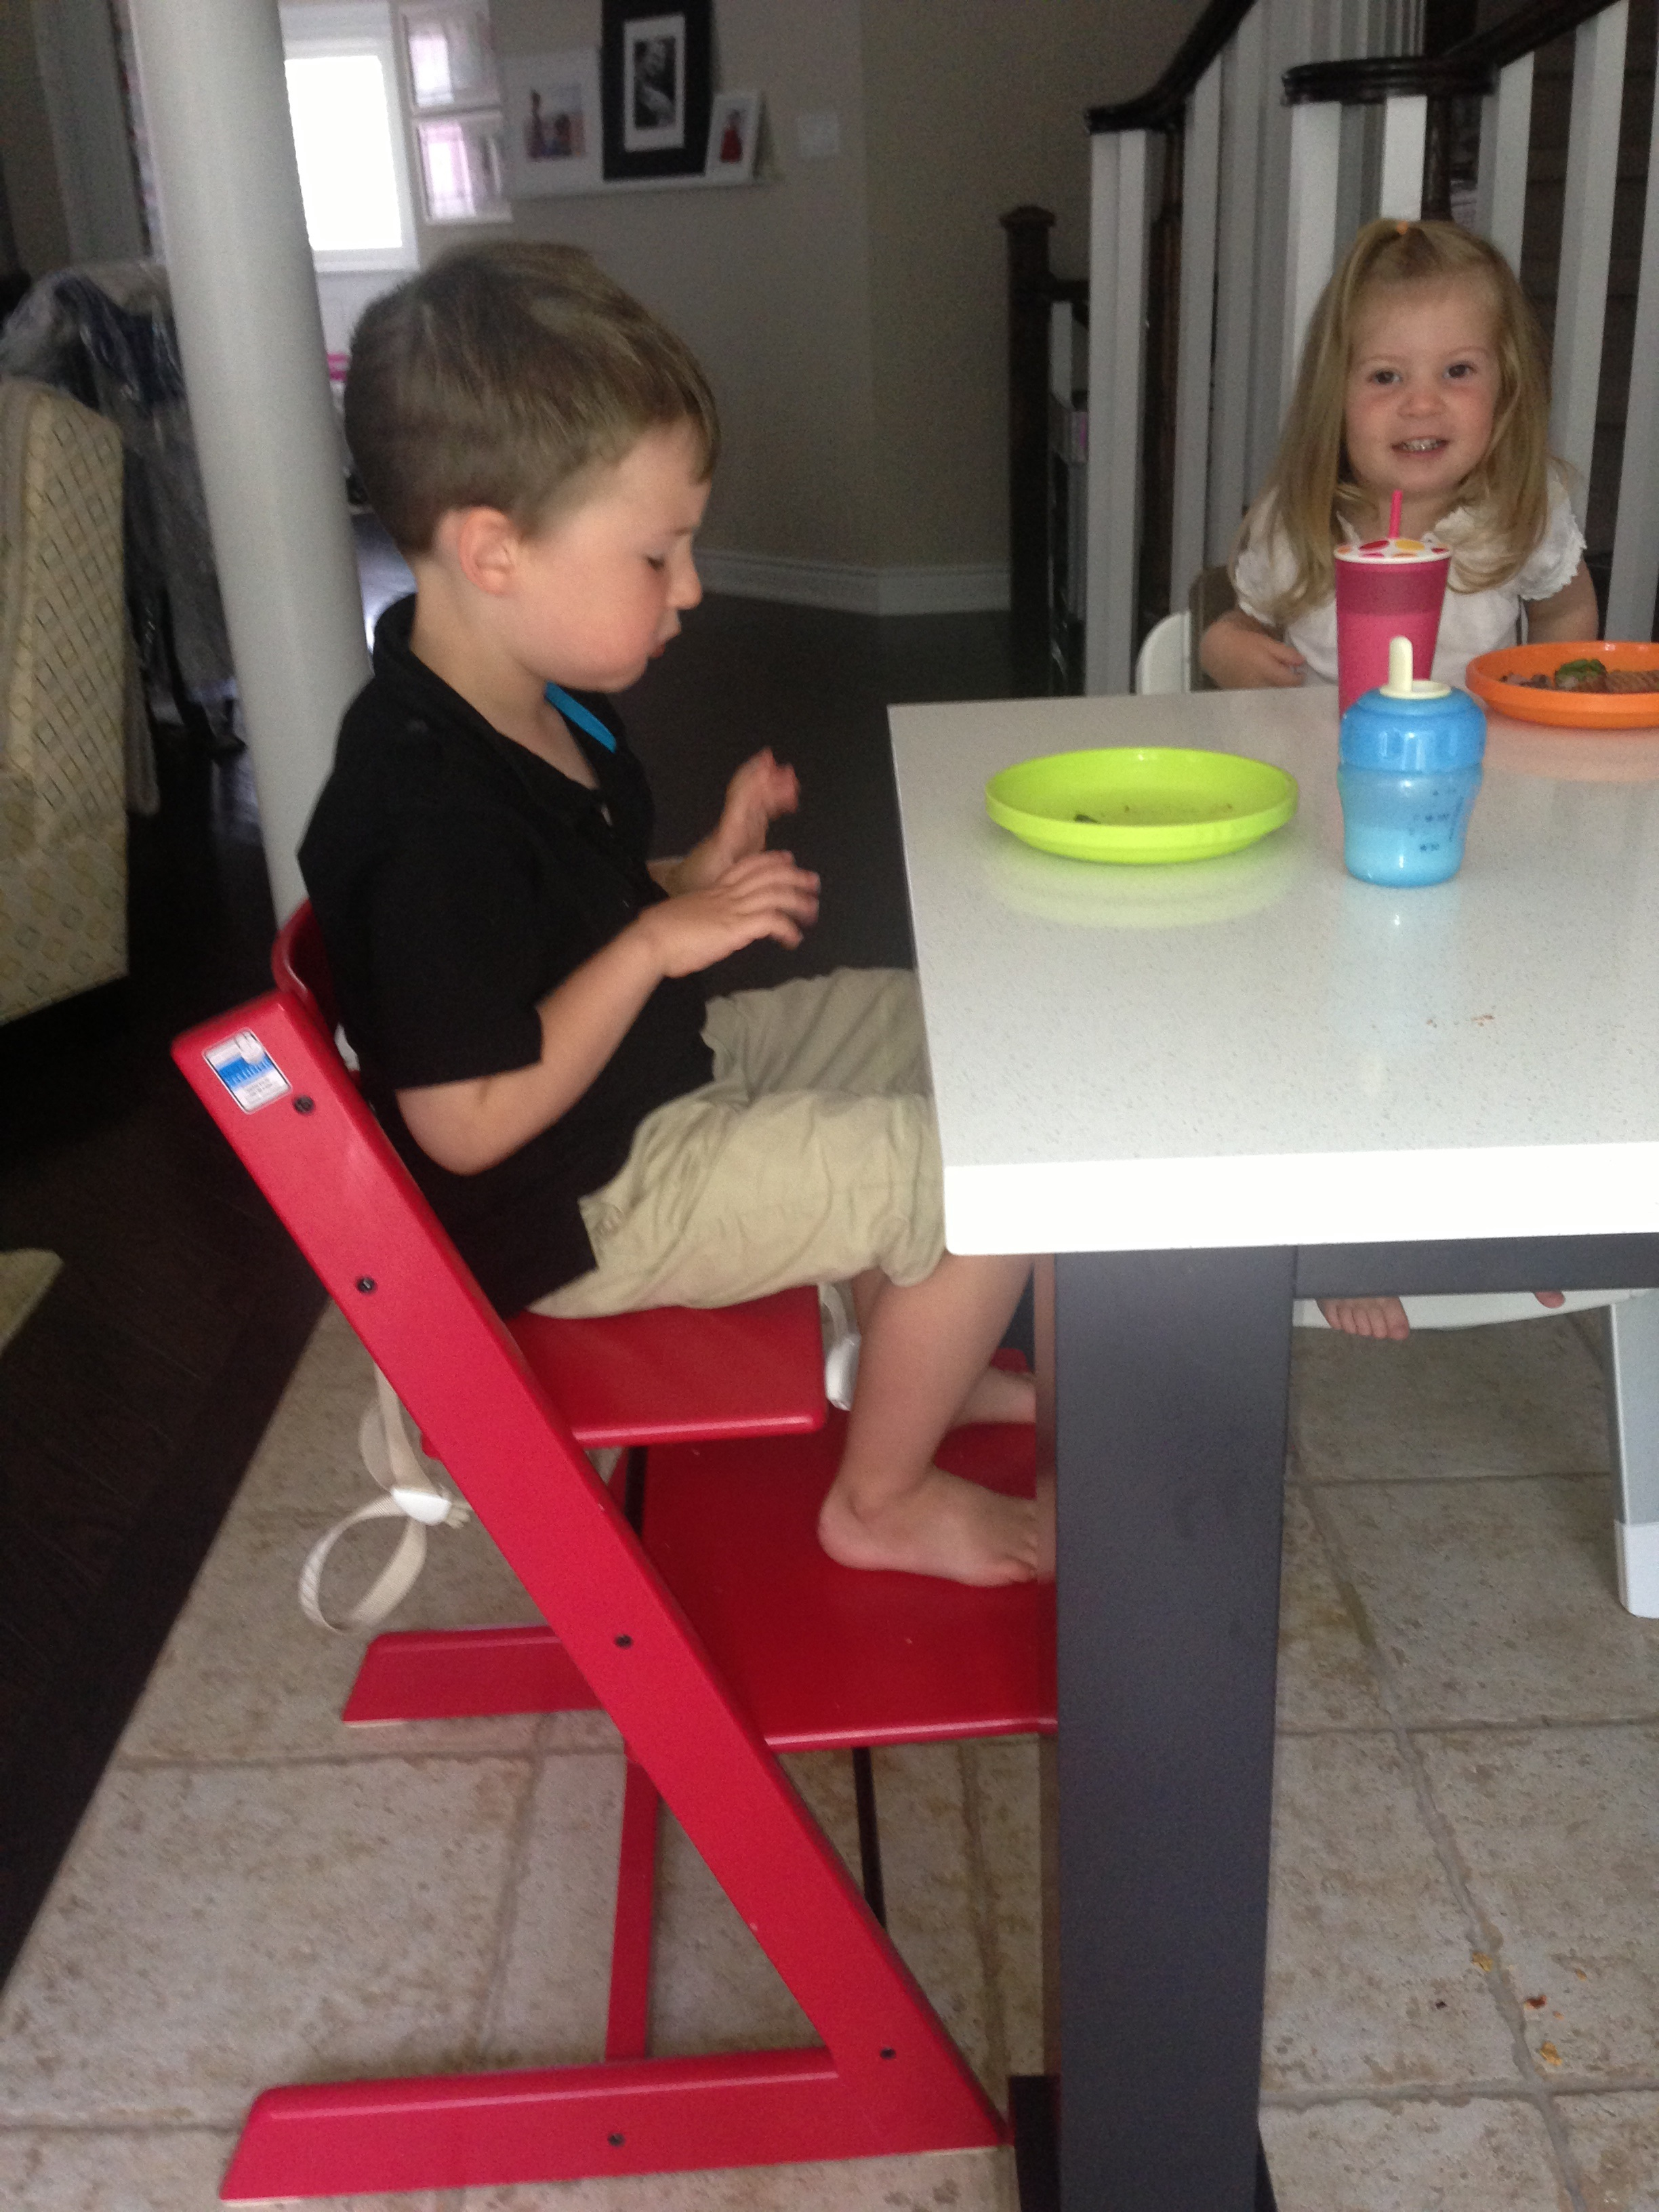 Prime Stokke Tripp Trapp Review Mommy Gearest Andrewgaddart Wooden Chair Designs For Living Room Andrewgaddartcom